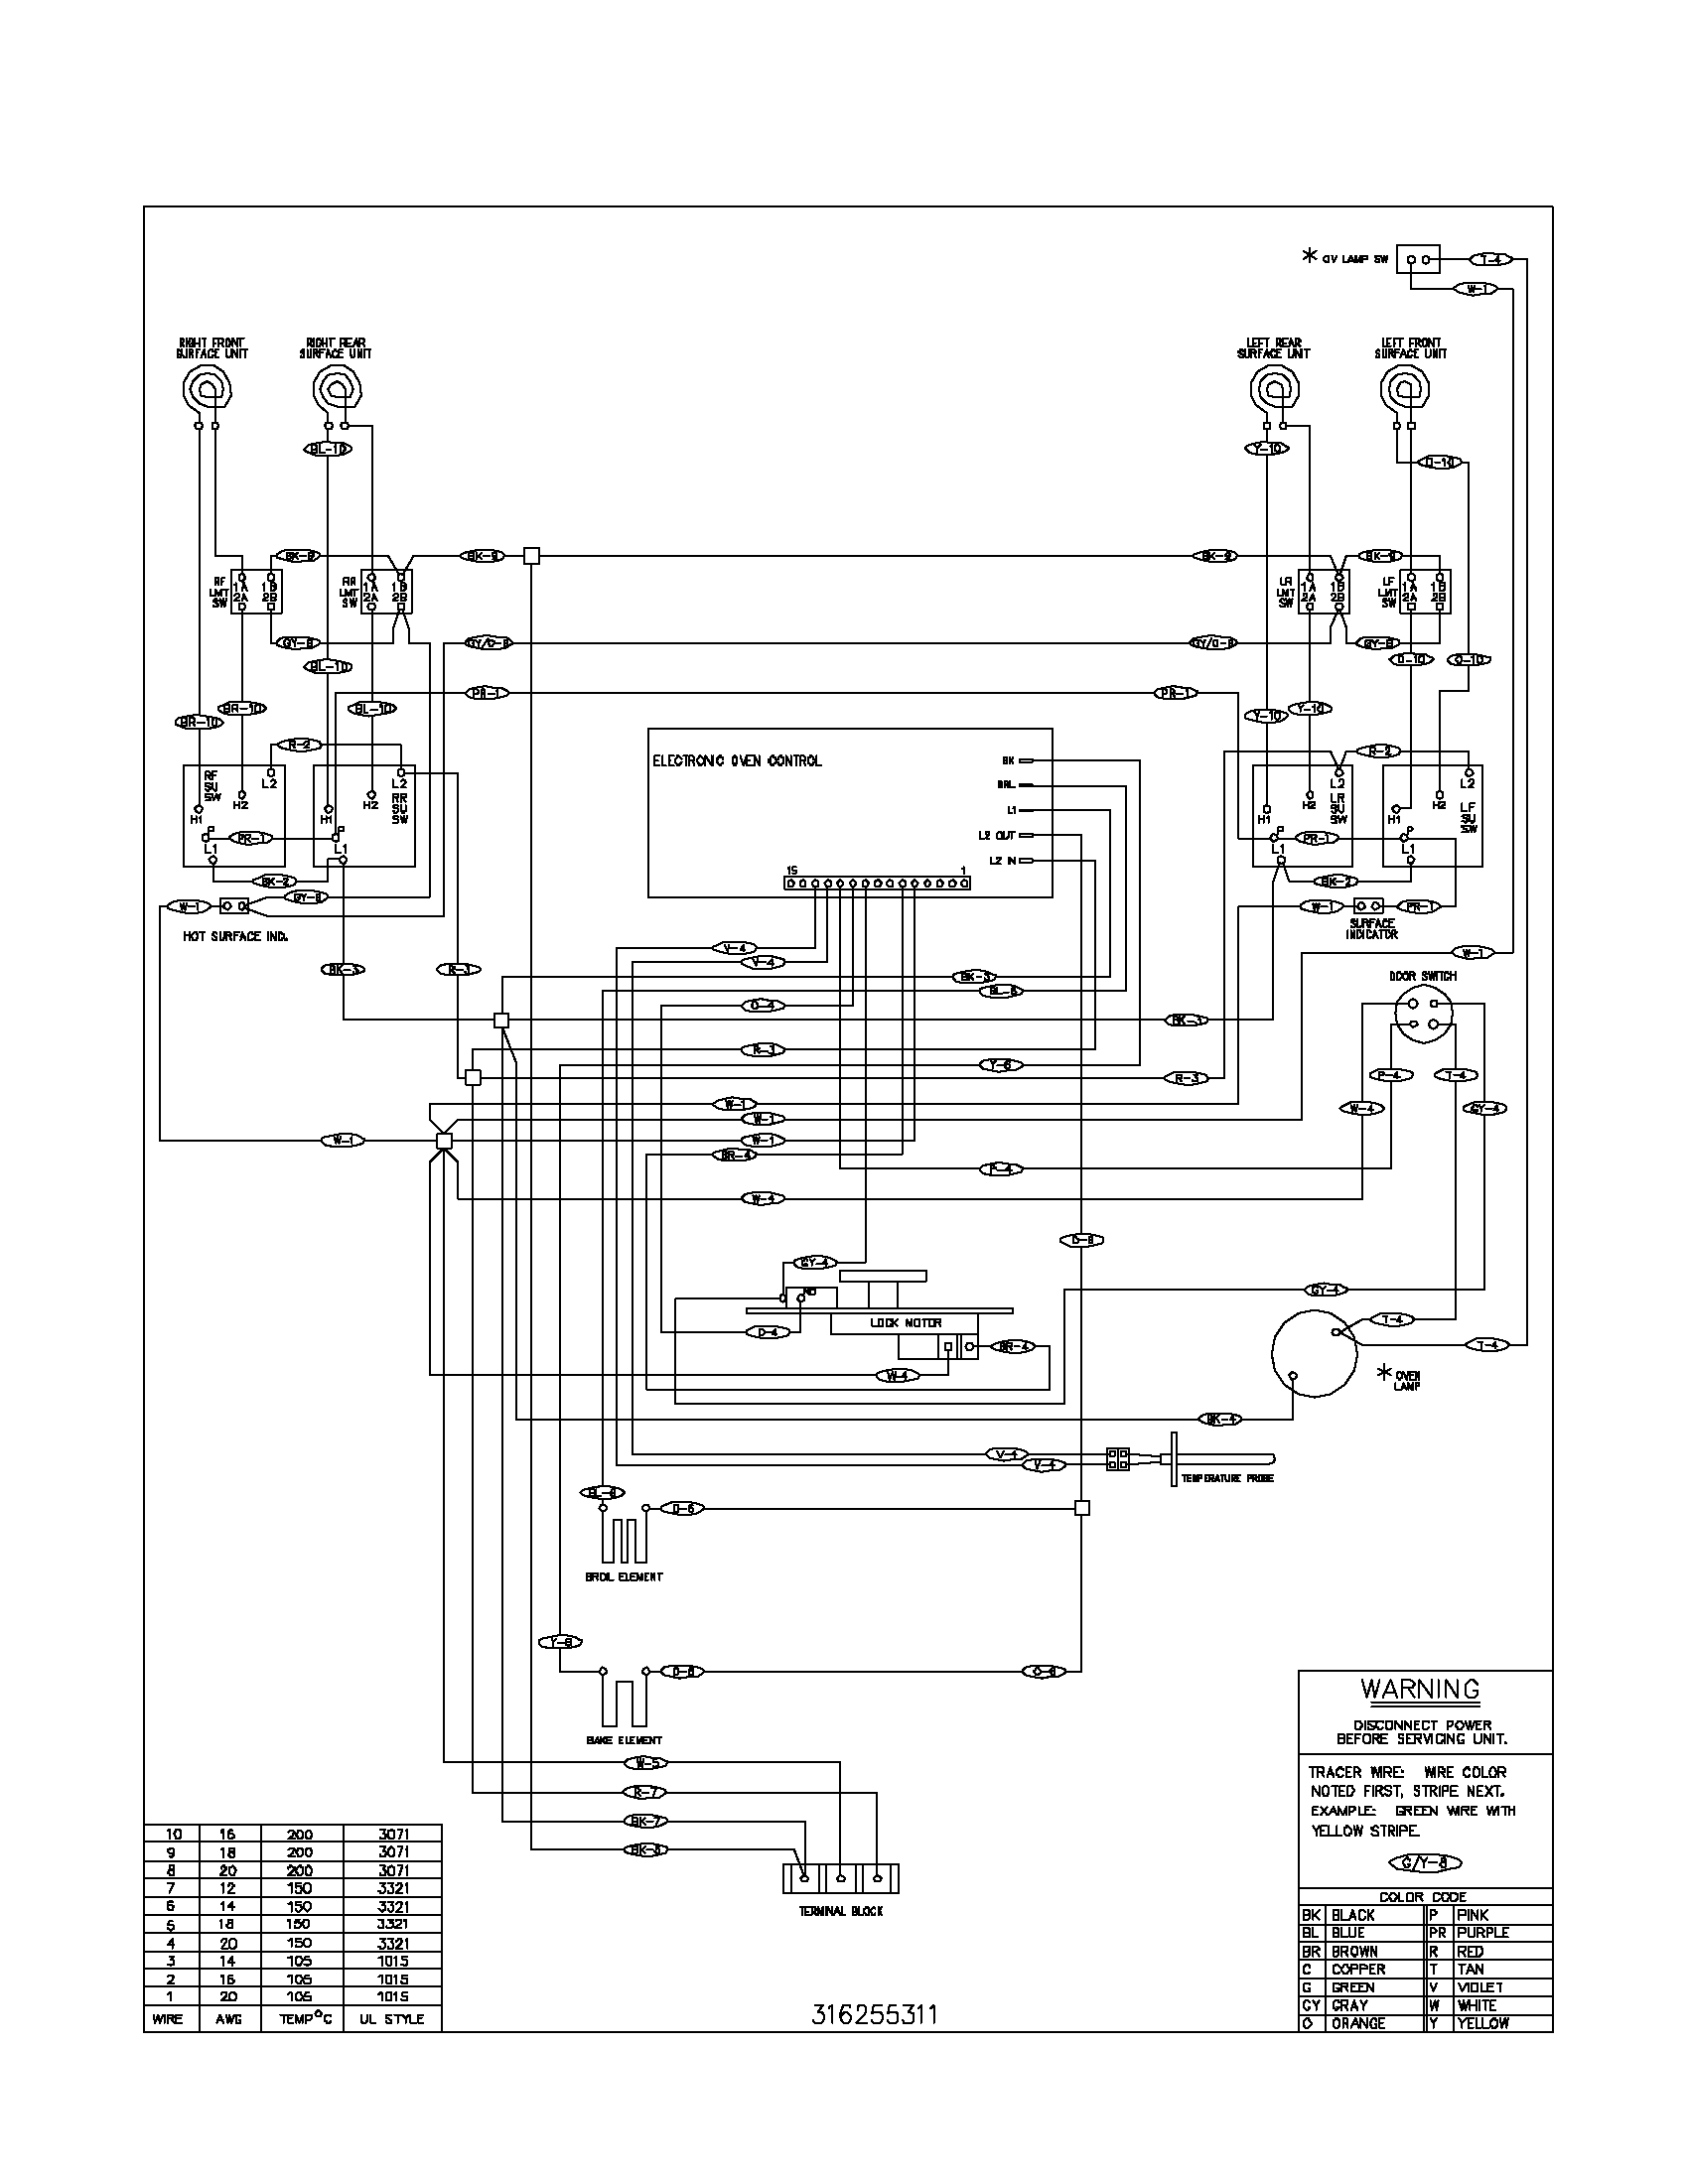 1980 Tpgs-805 Scooter Wiring Diagram